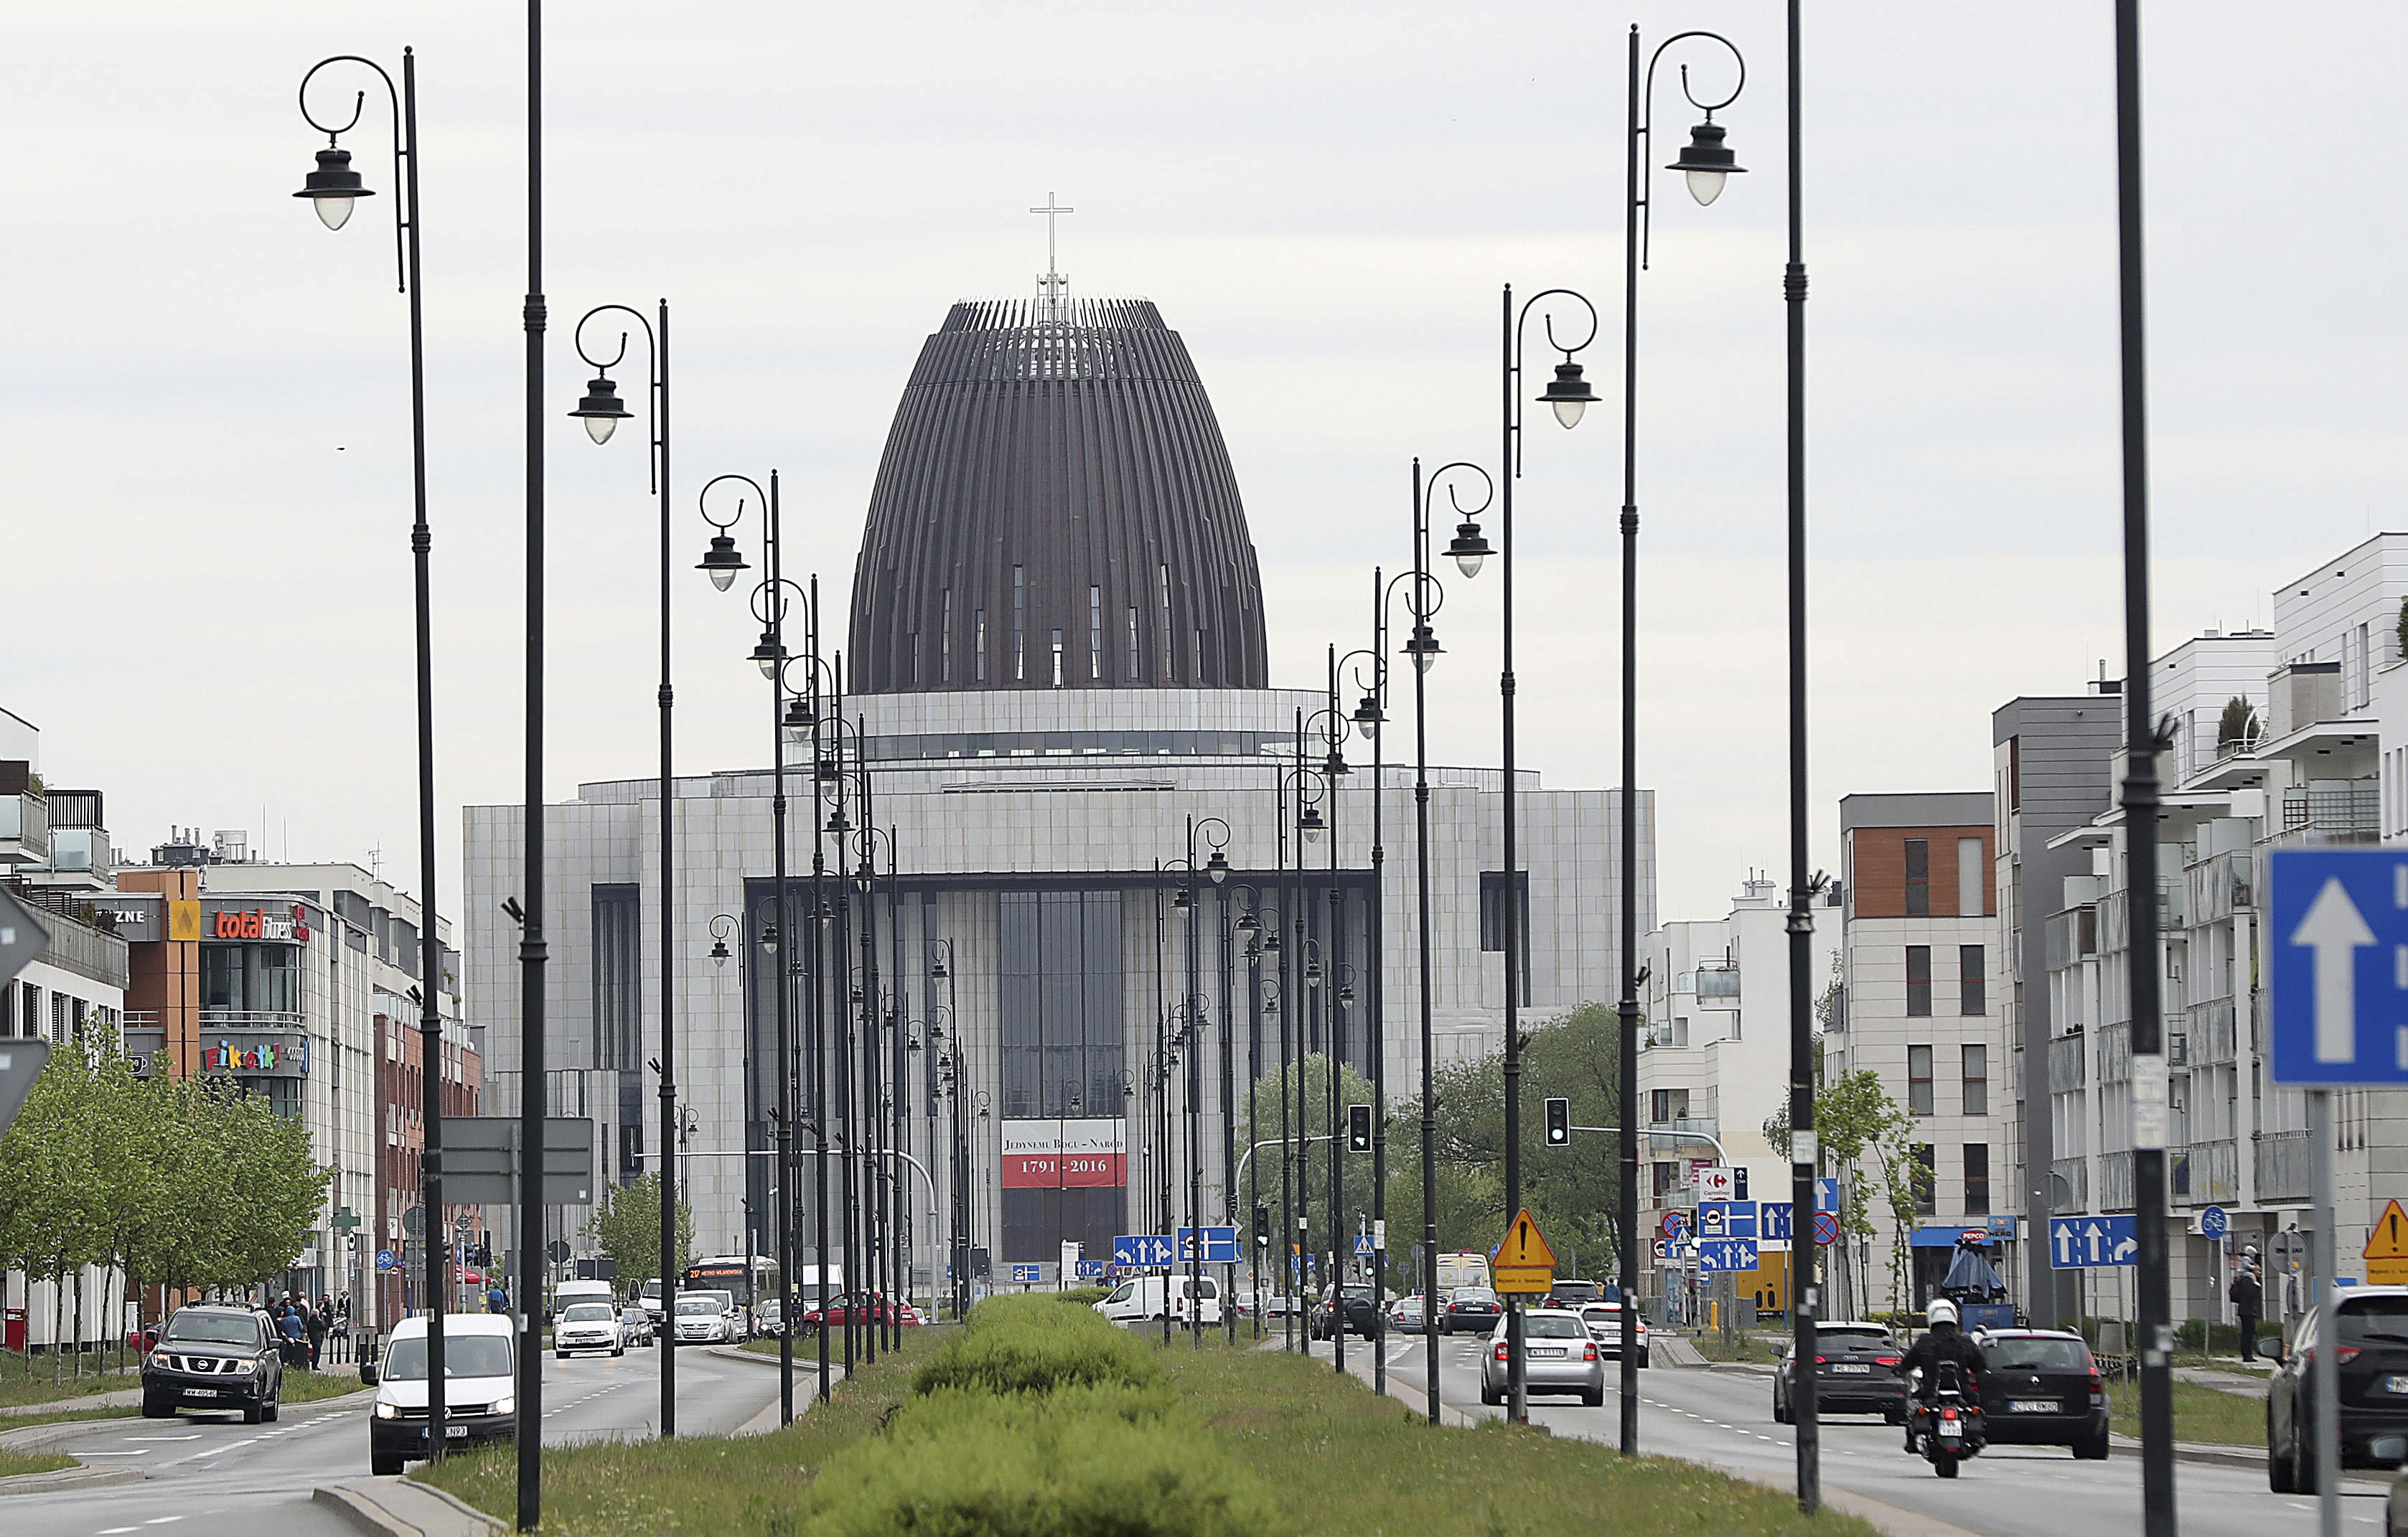 Cars drive on the street in front of the Temple of Divine Providence, a major church in the Polish capital, in Warsaw, Poland, Monday, May 13, 2019. A new documentary about pedophile priests has deeply shaken Poland, one of Europe's most Roman Catholic societies, eliciting an apology from the church hierarchy and prompting one priest to leave the clergy.(AP Photo/Czarek Sokolowski)